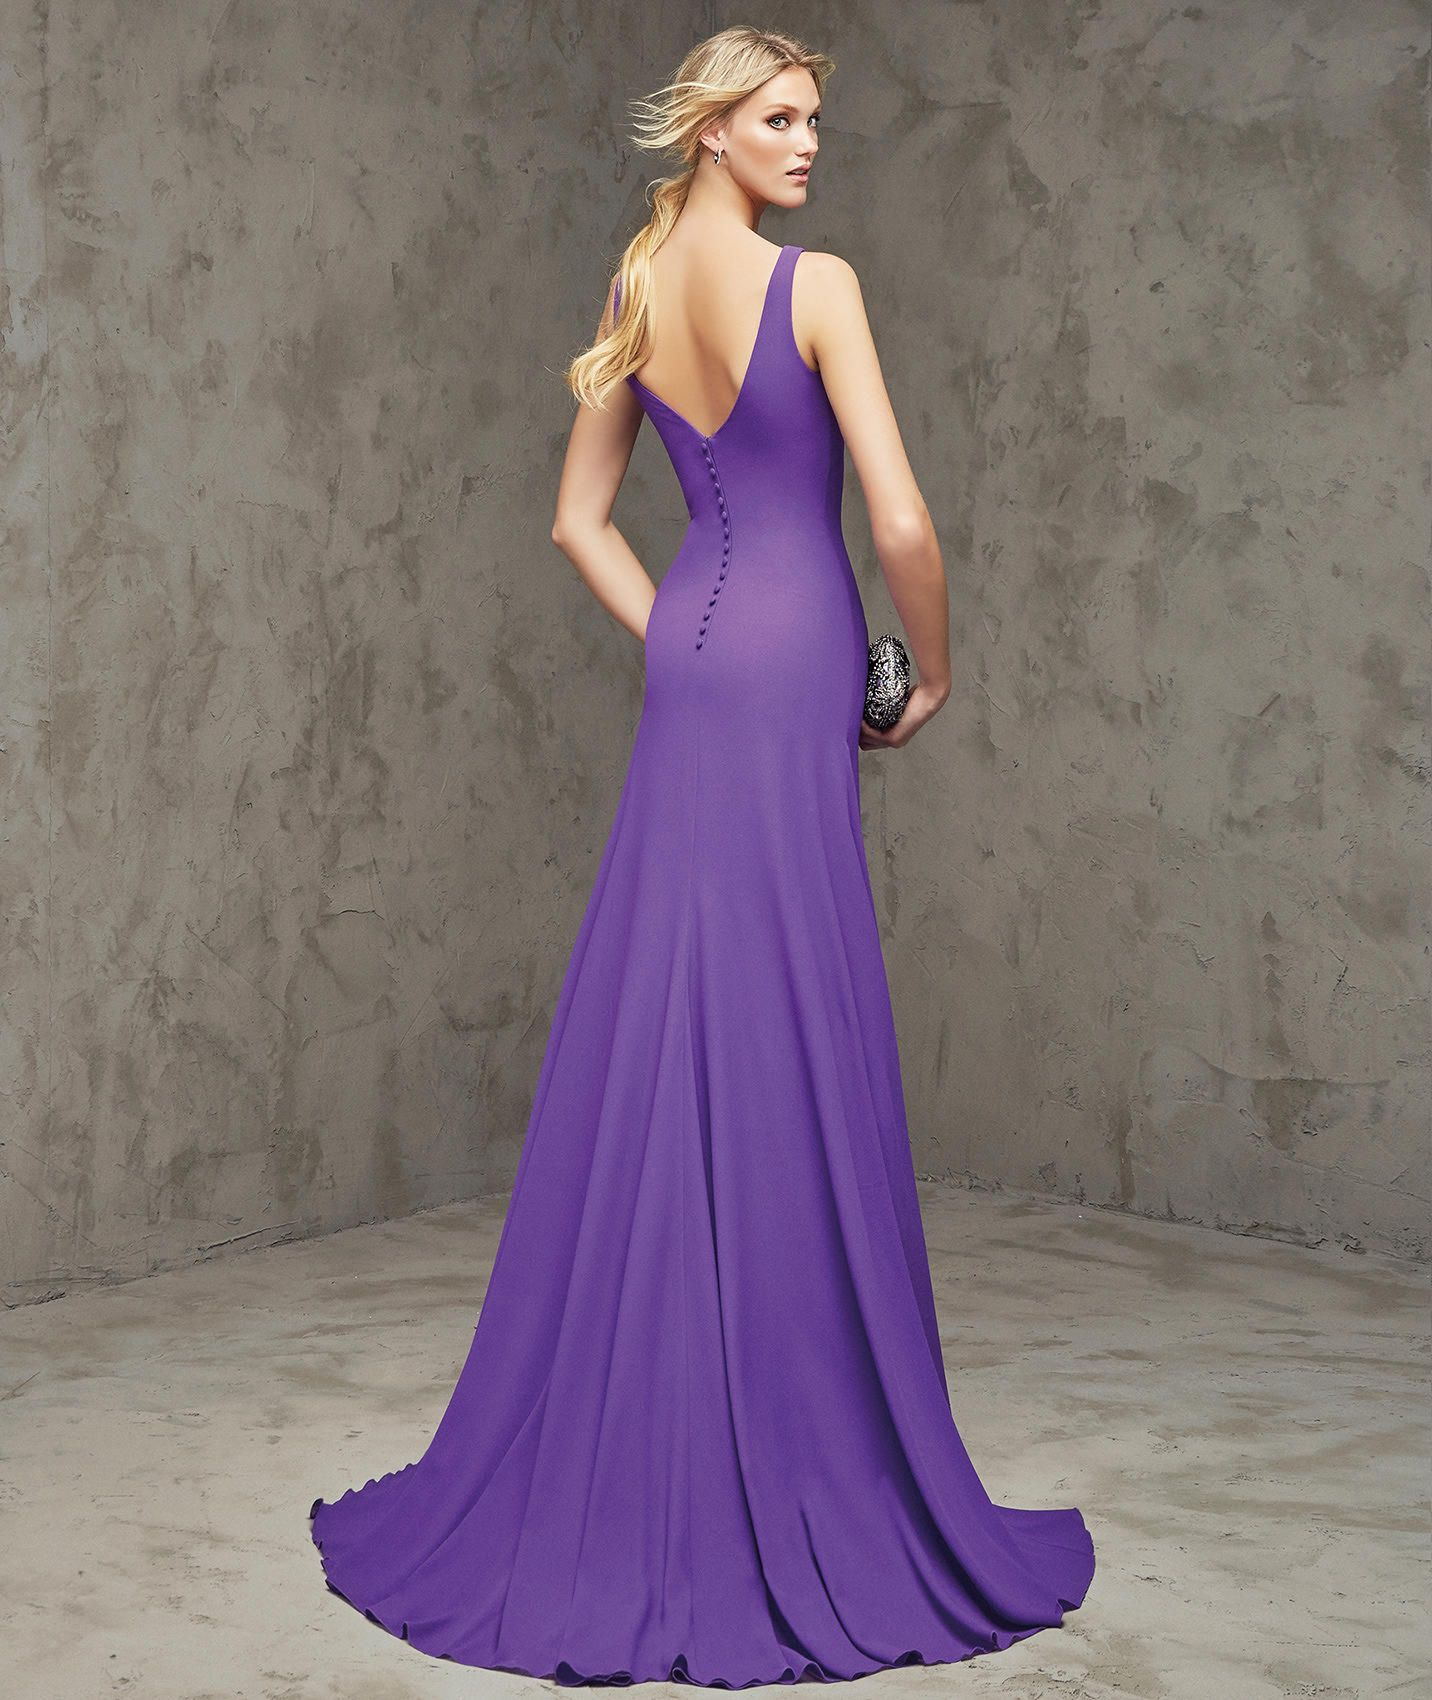 Filia - georgette dress in purple | For my bella <3 | Pinterest ...